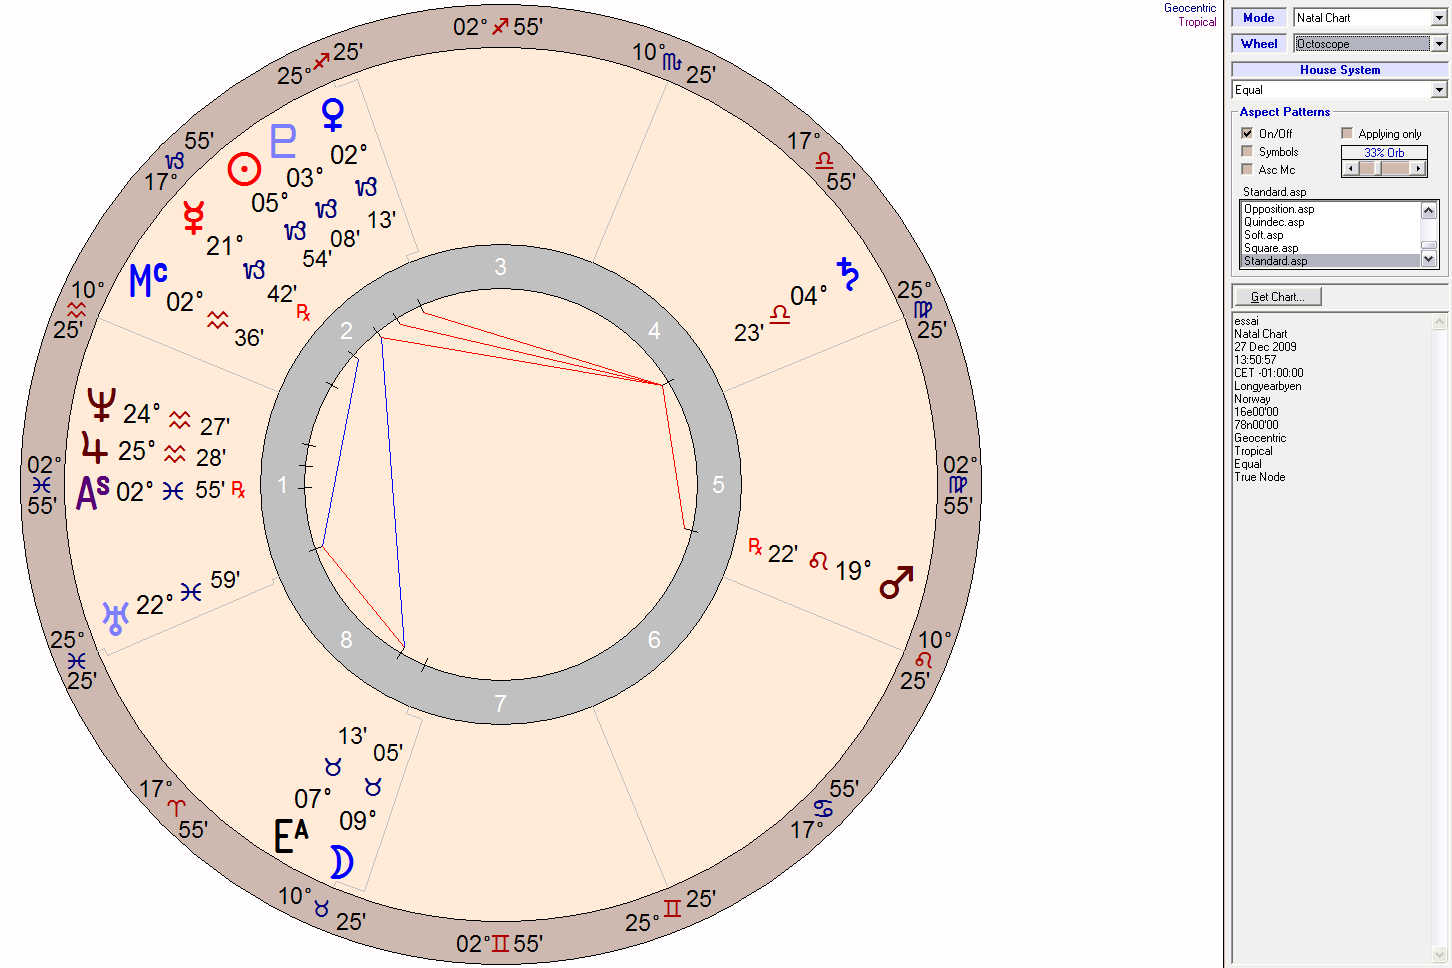 A reform of the astrological chart to be compared with zet and stellarium which present a theme or a chart more conform with reality nvjuhfo Image collections